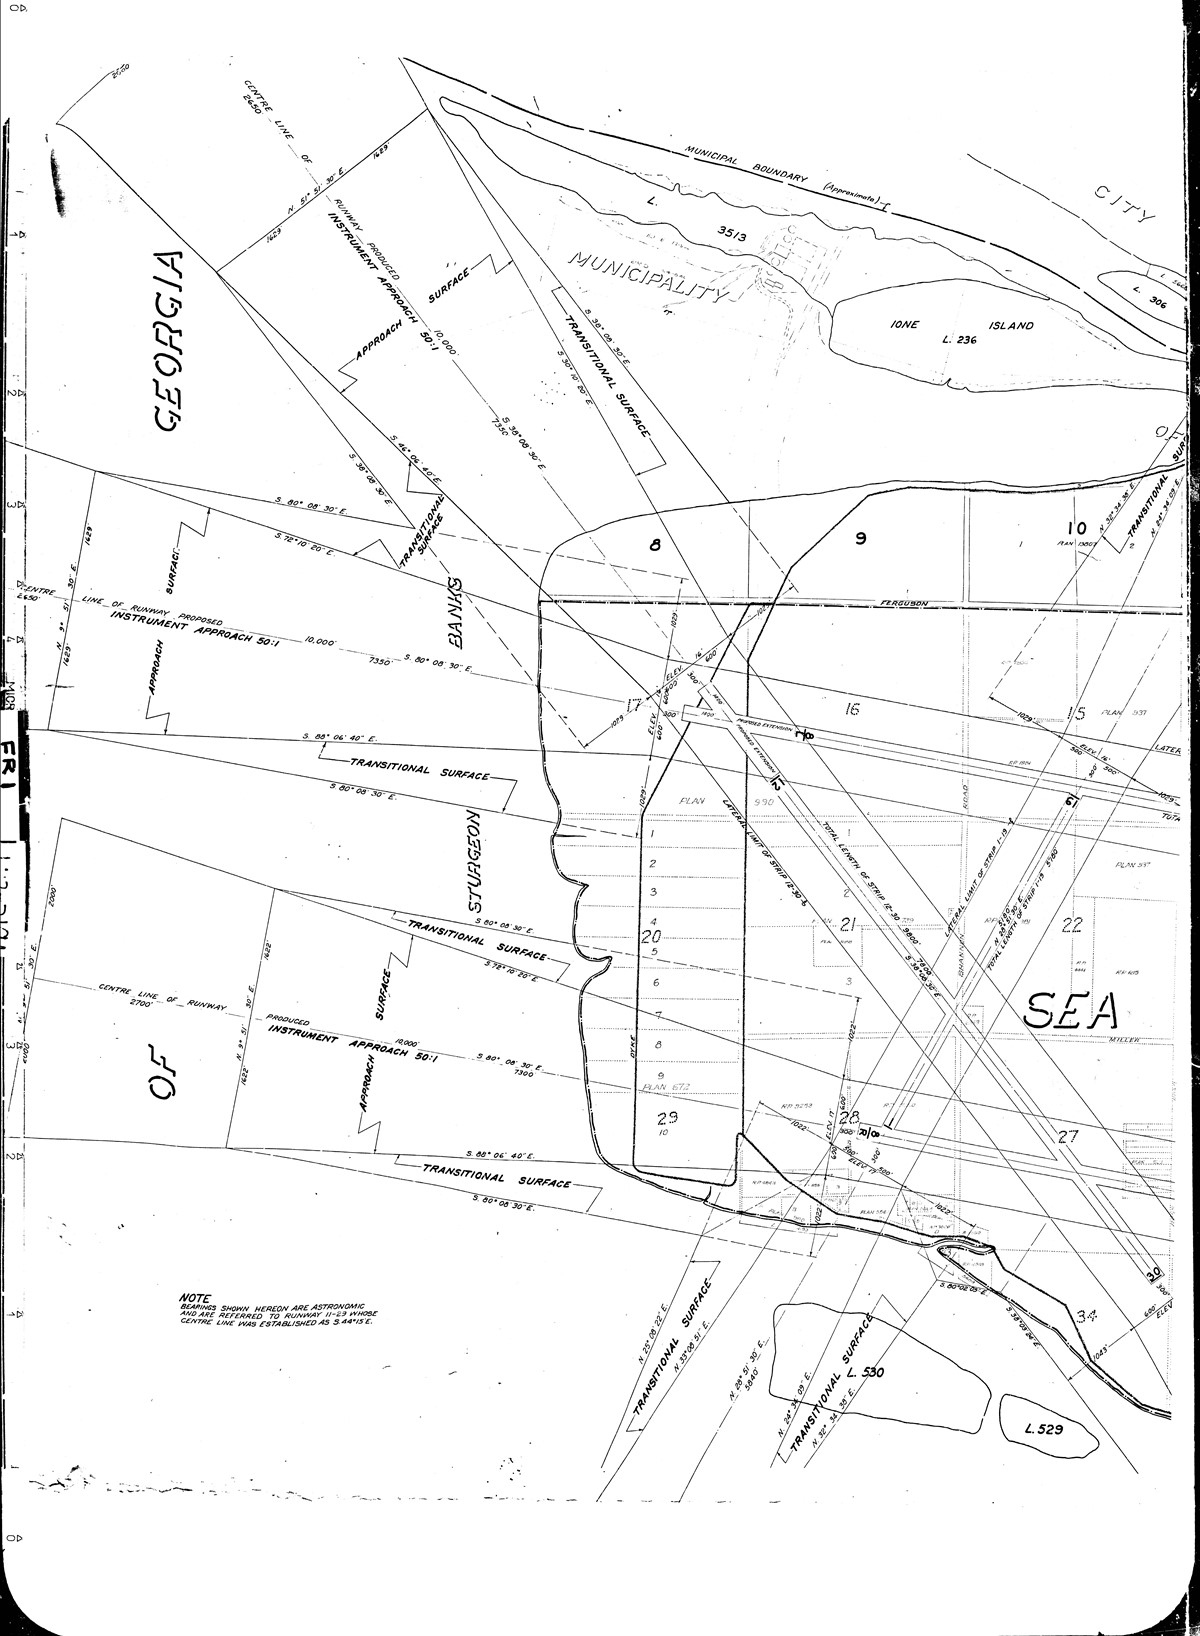 City of richmond bc maps search results click for larger image malvernweather Images